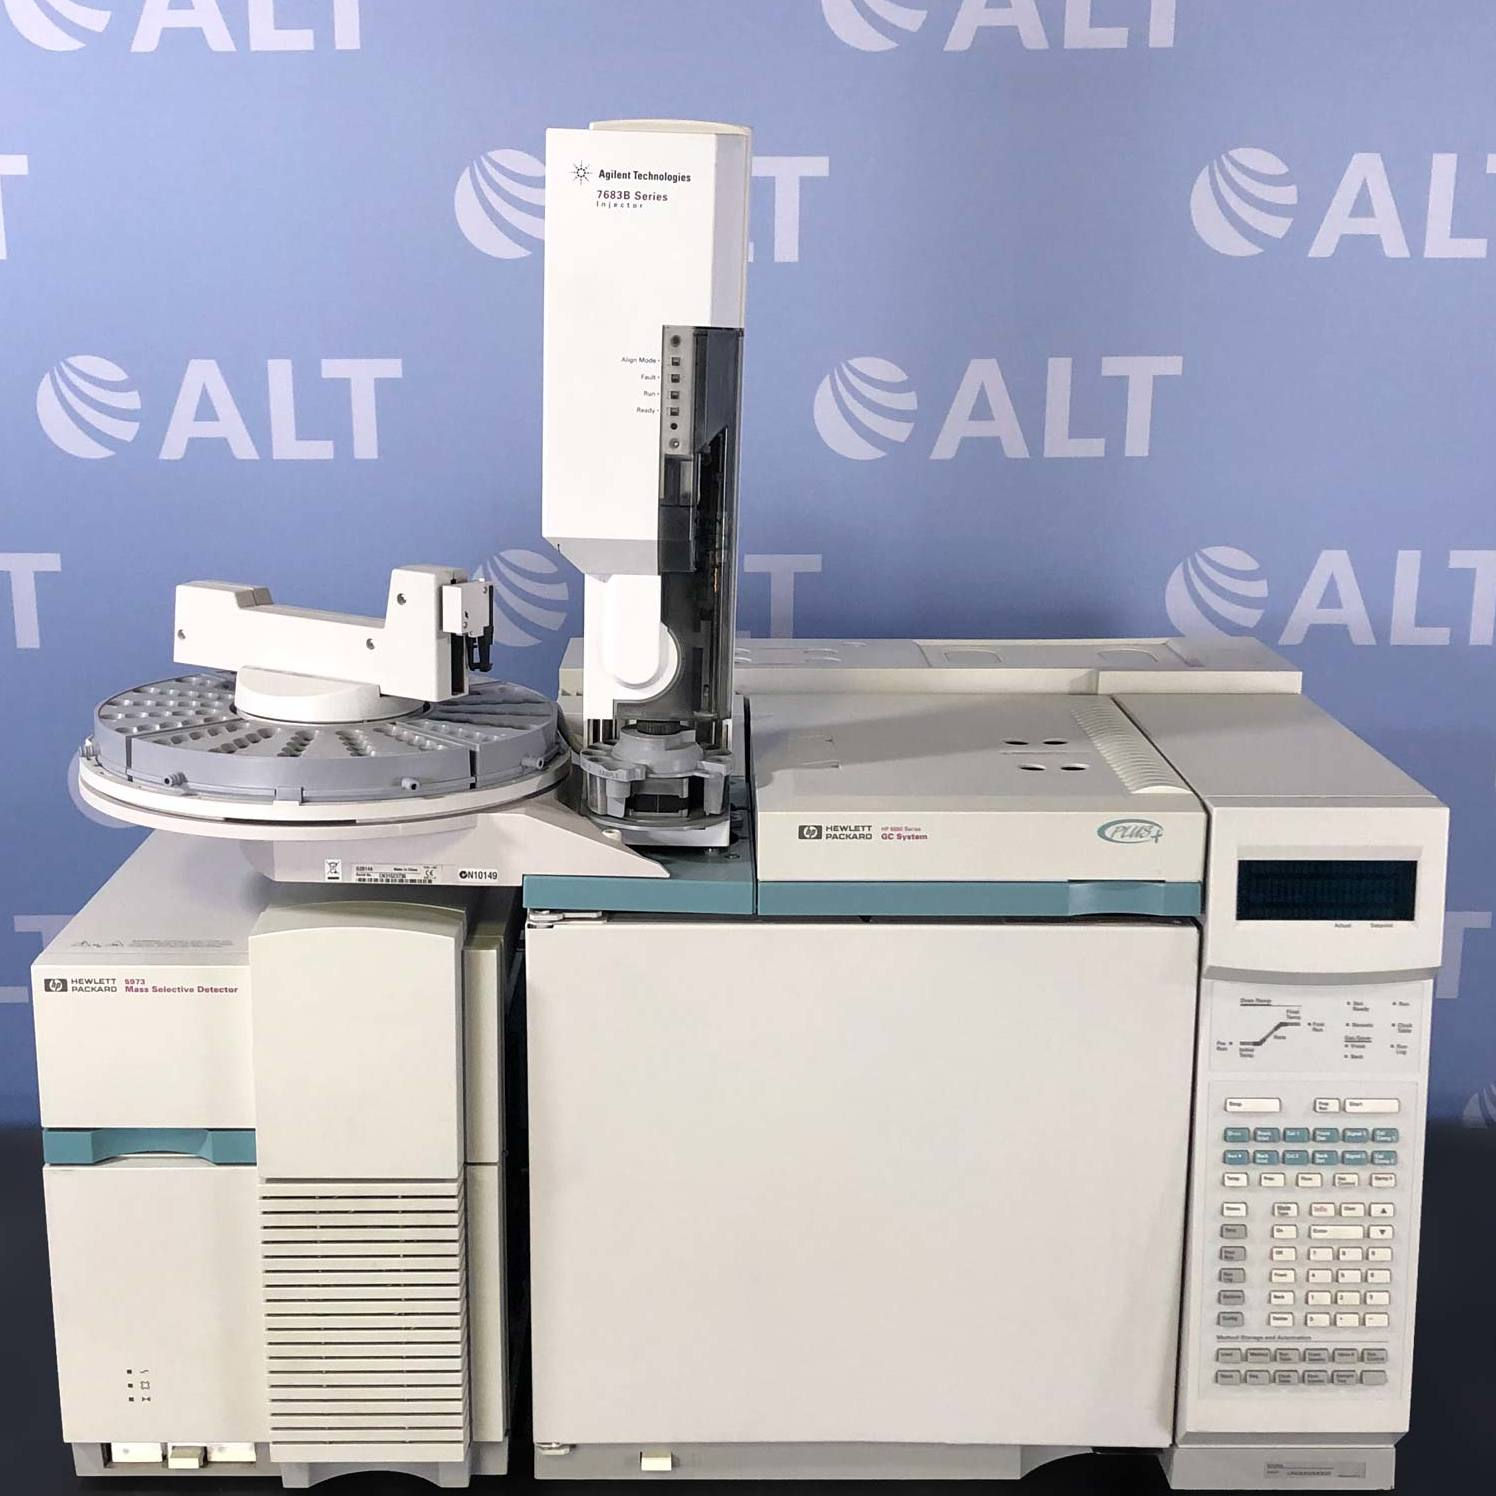 Agilent 6890N Plus (G1530A) GC and 5973 (G1099A) Mass Selective Detector Image